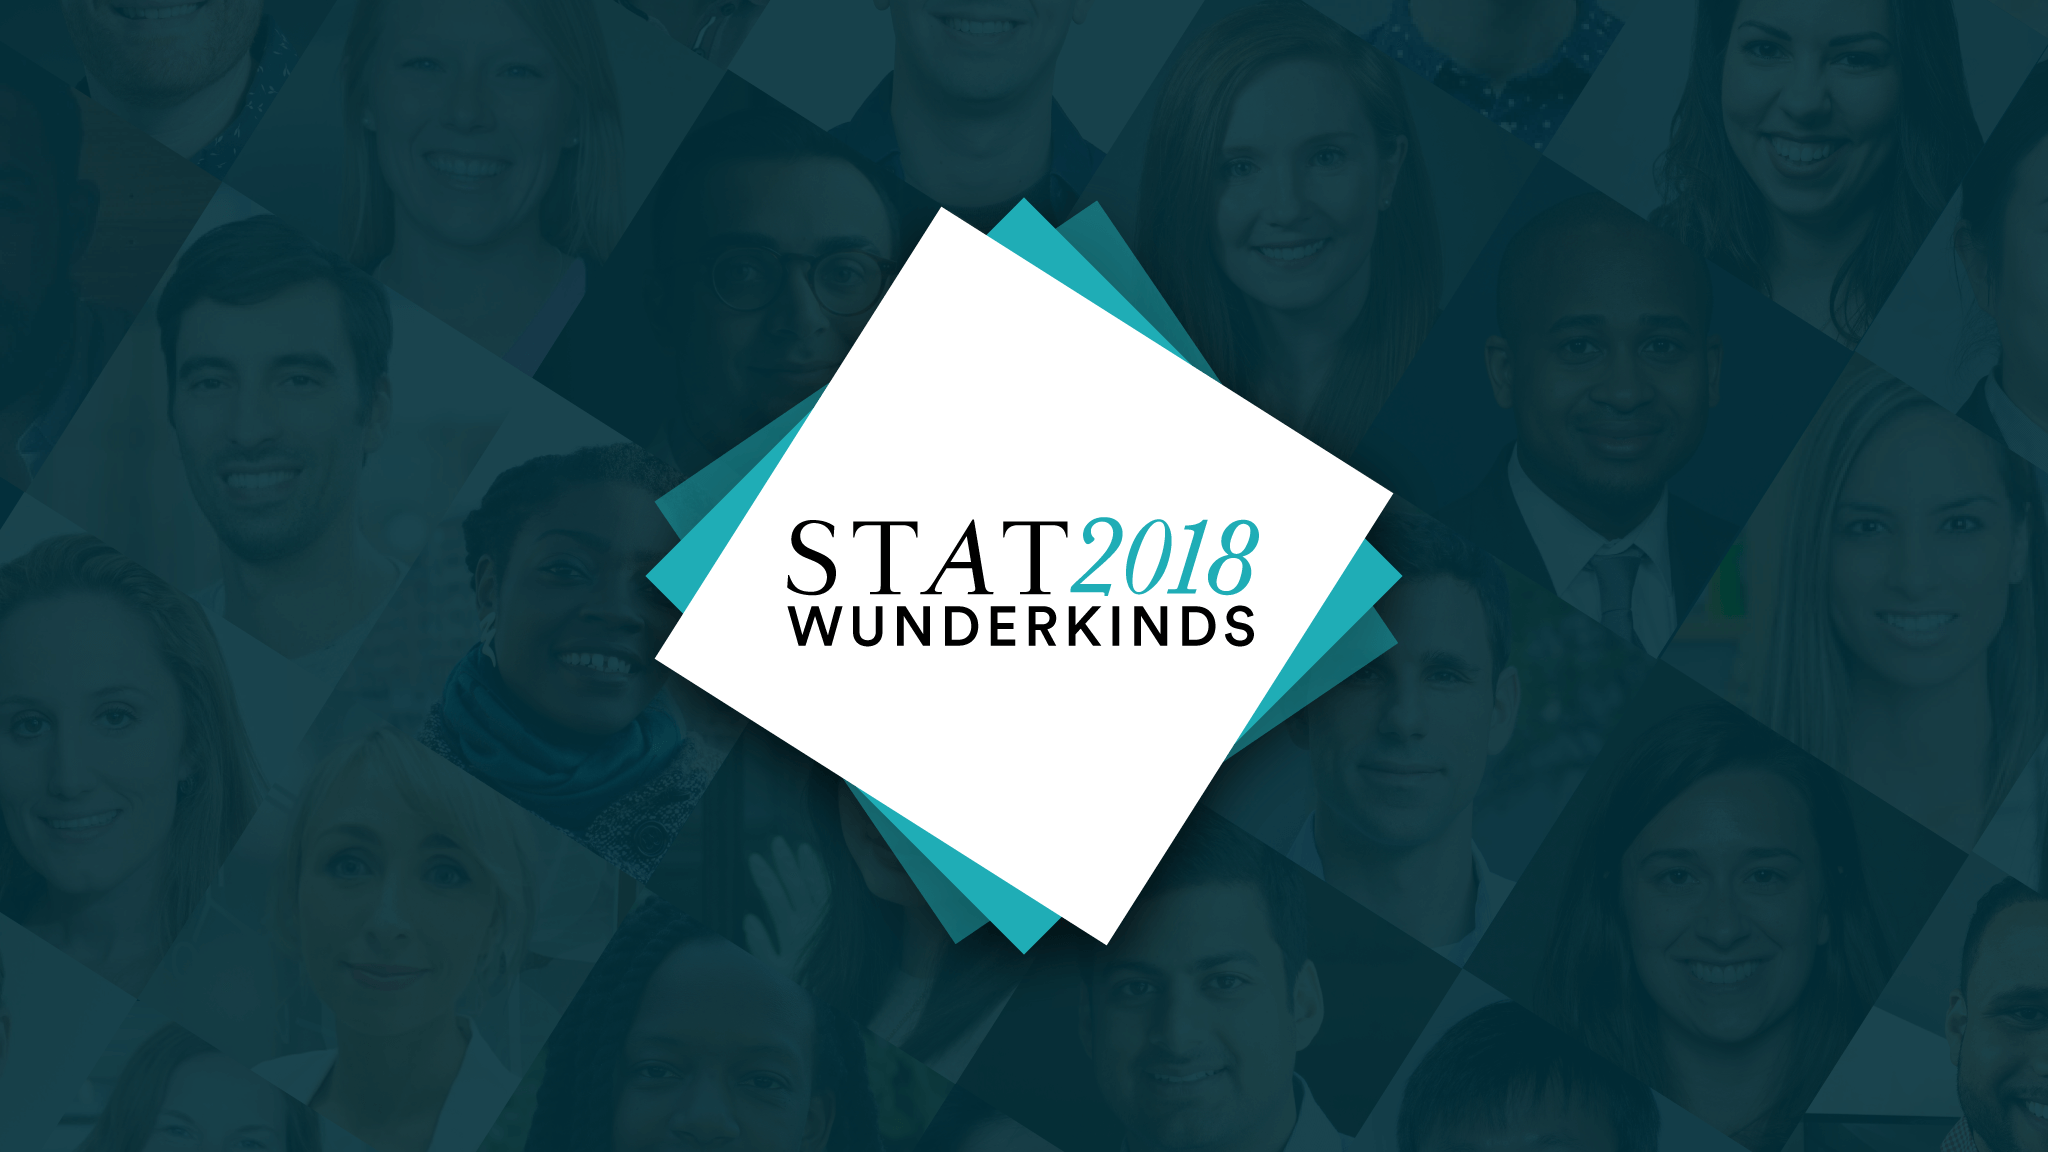 Meet the 2018 STAT Wunderkinds - STAT